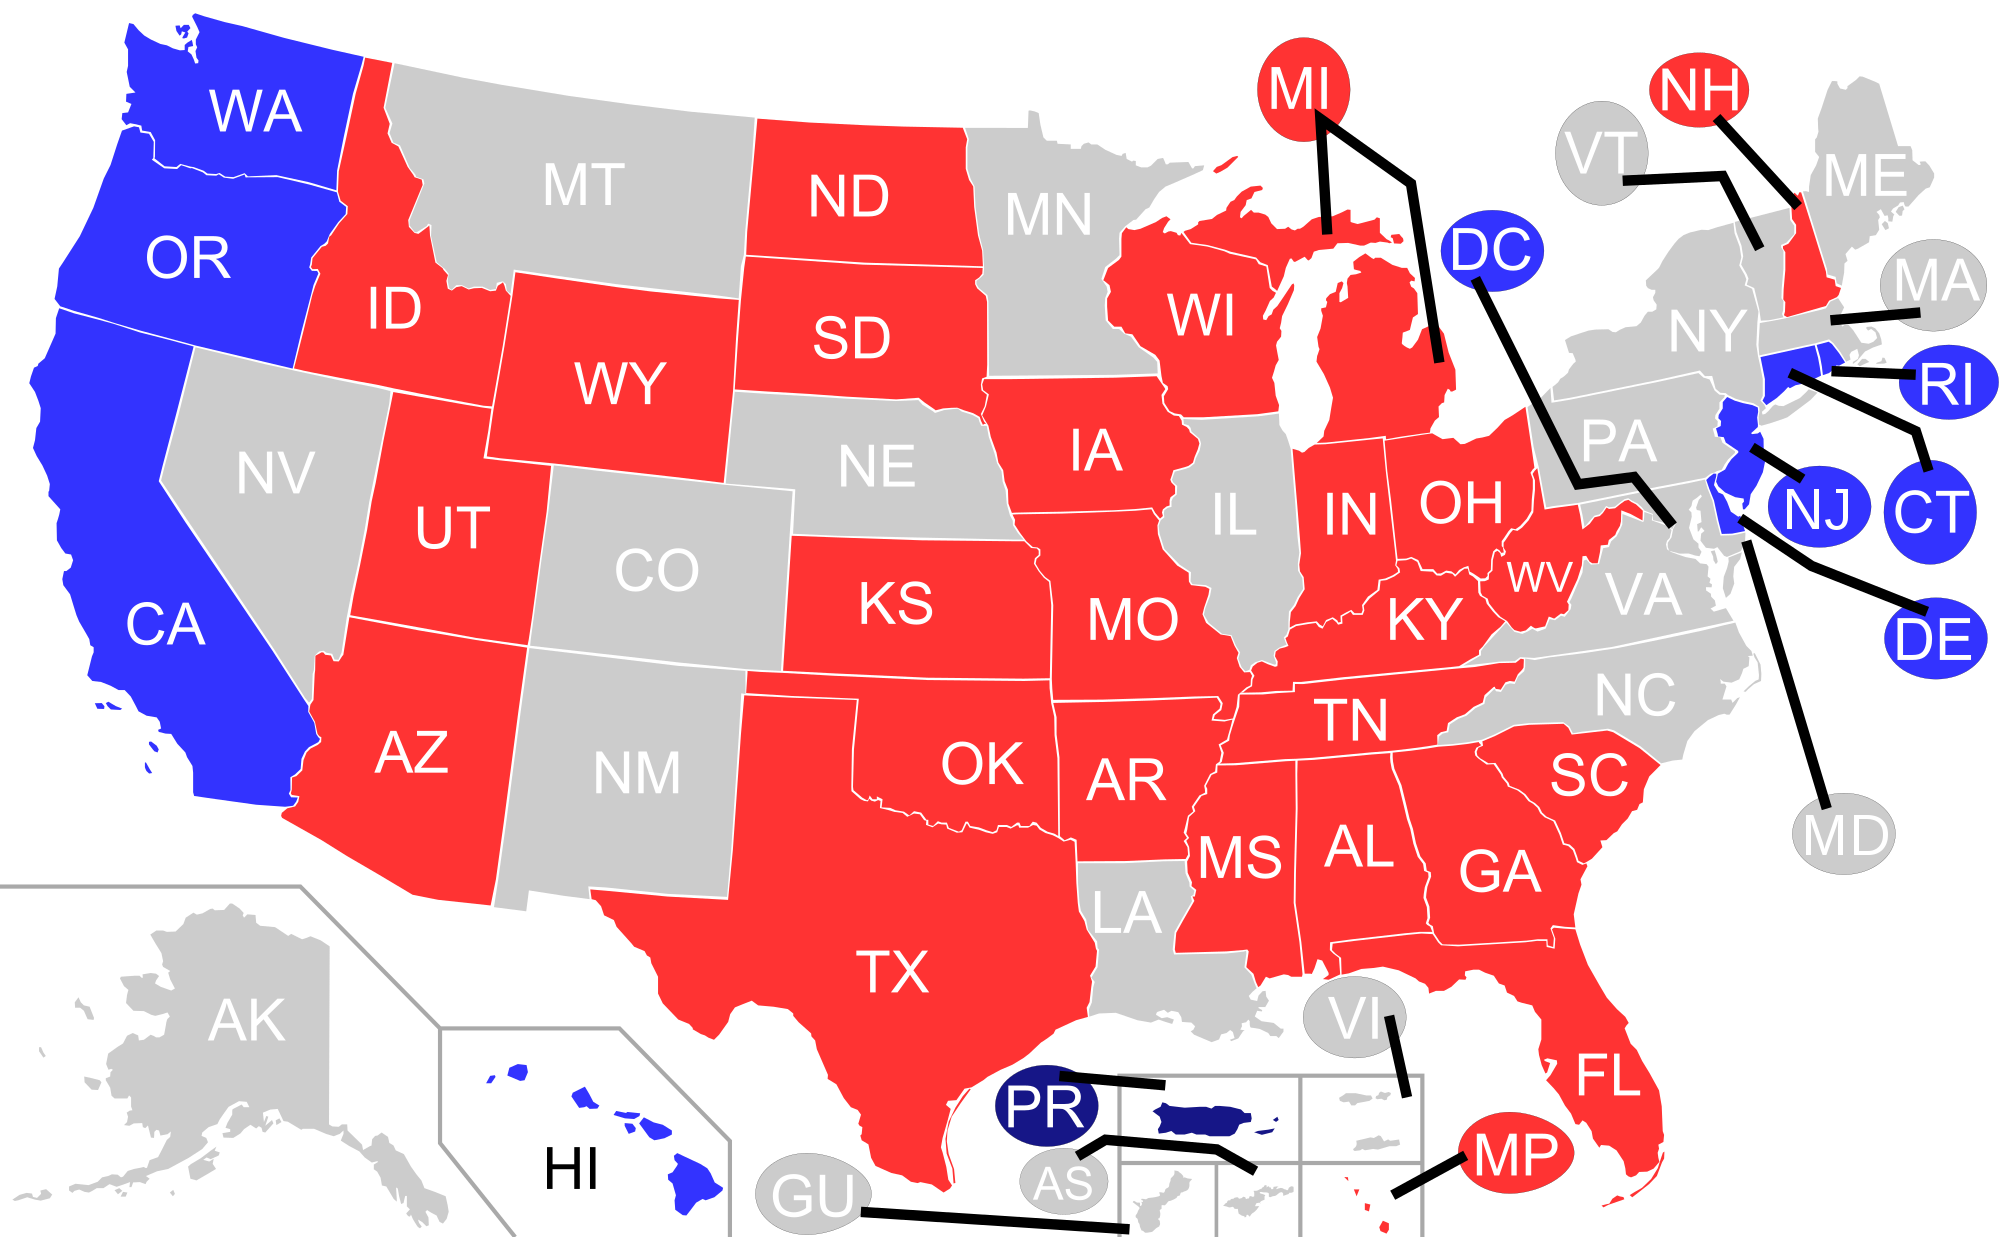 United States. File political control map